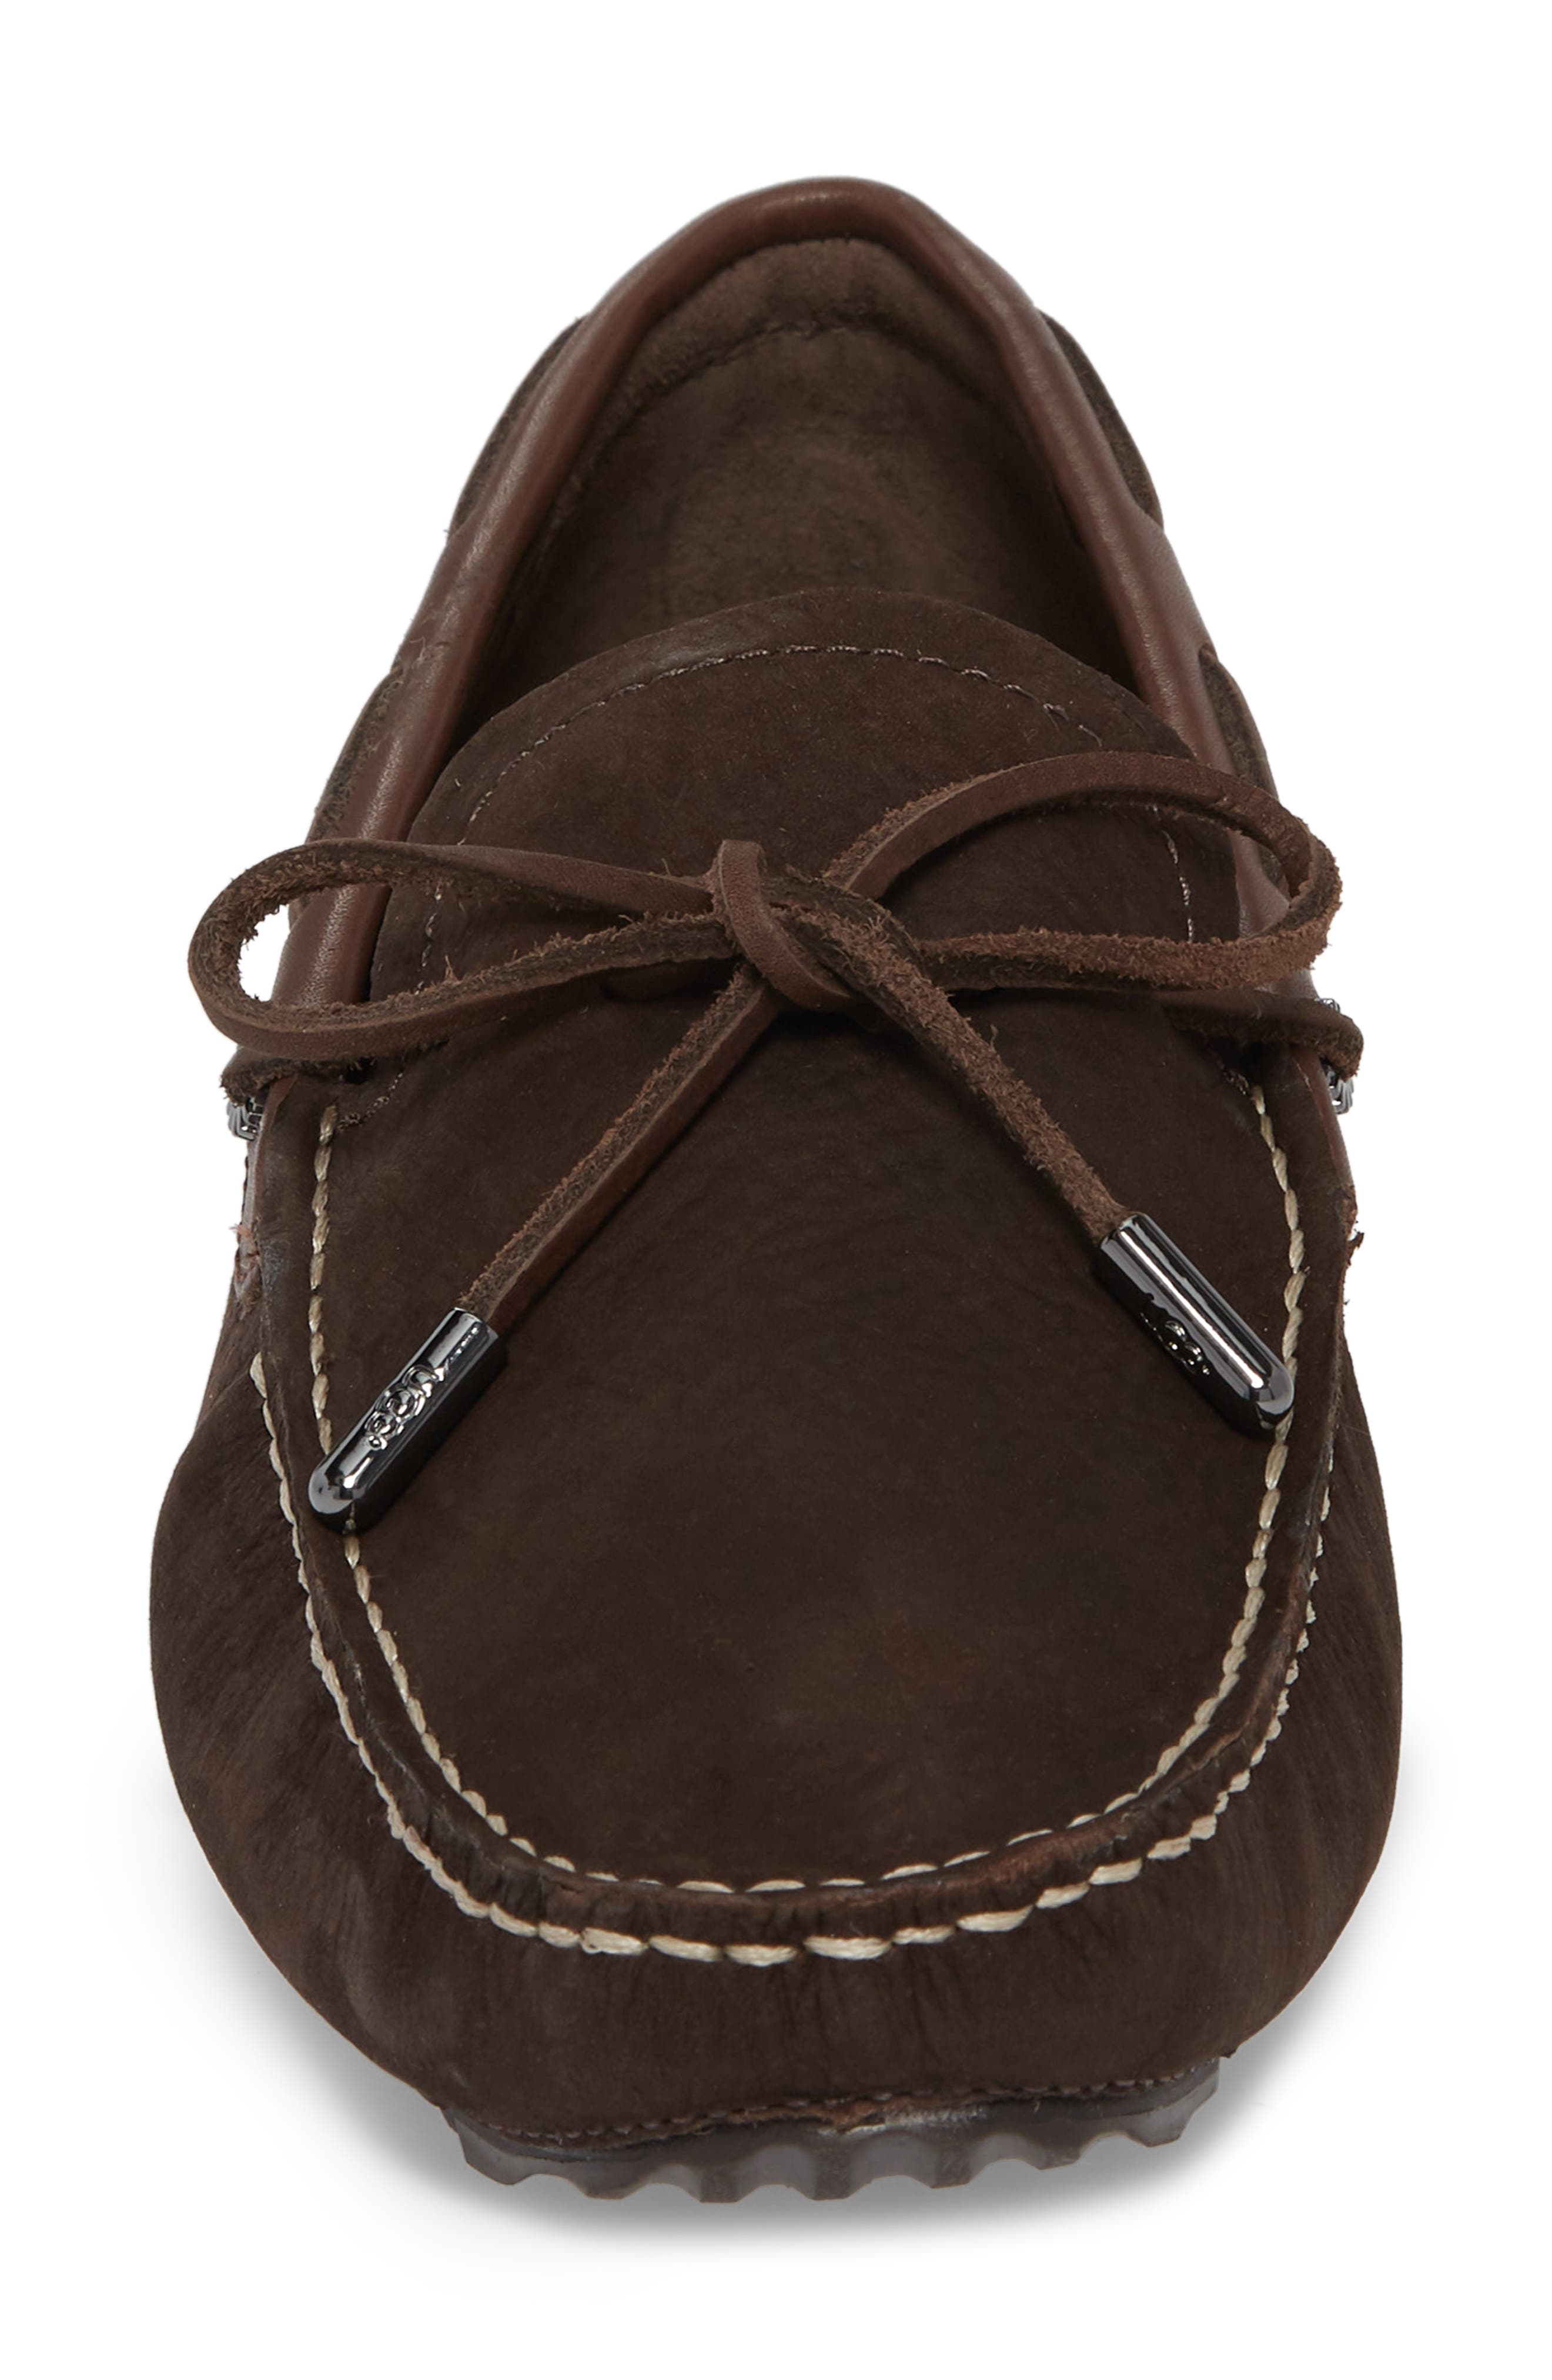 Bel Air Driving Moccasin,                             Alternate thumbnail 4, color,                             STOUT LEATHER